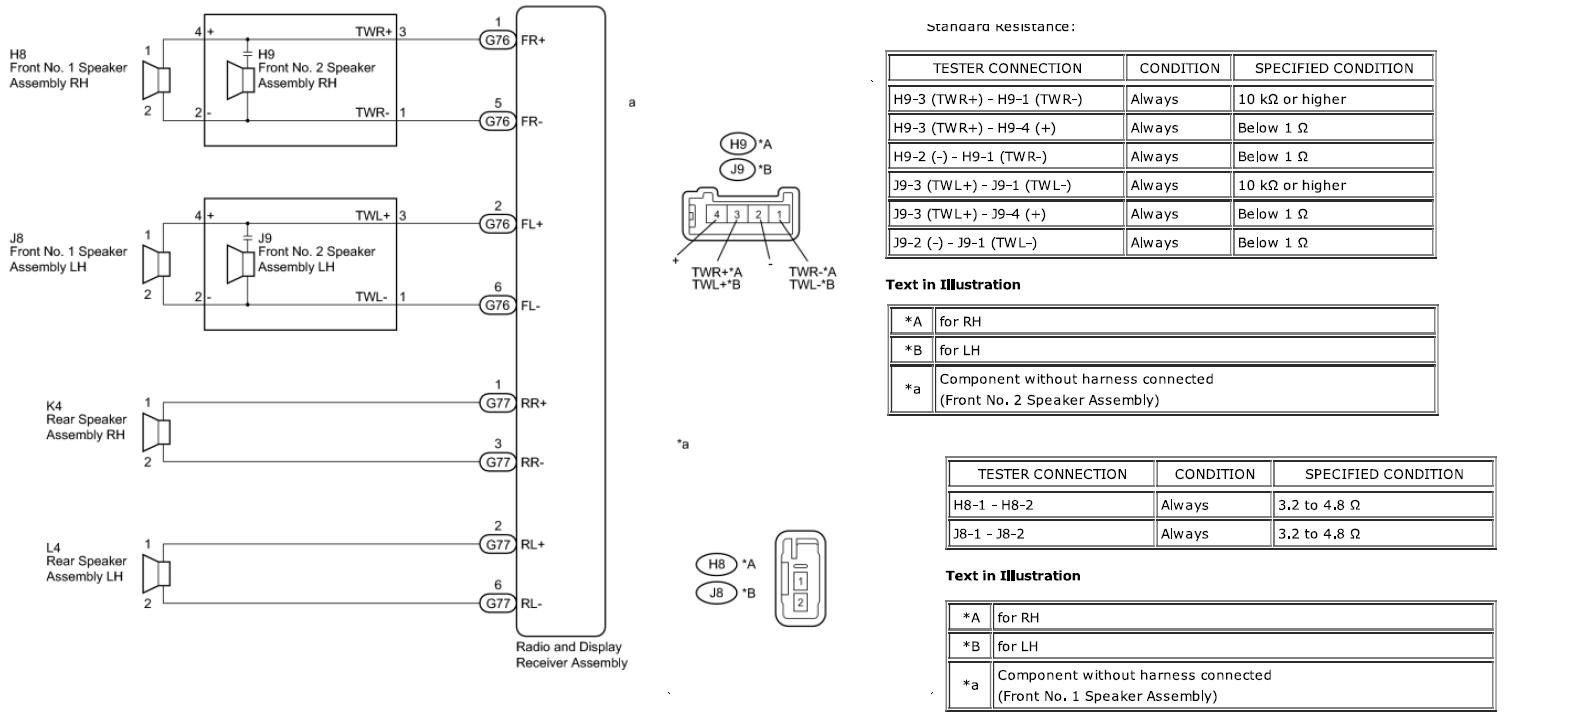 pioneer deh p4000ub wiring diagram efcaviation com pioneer fh x700bt wiring diagram at readyjetset.co